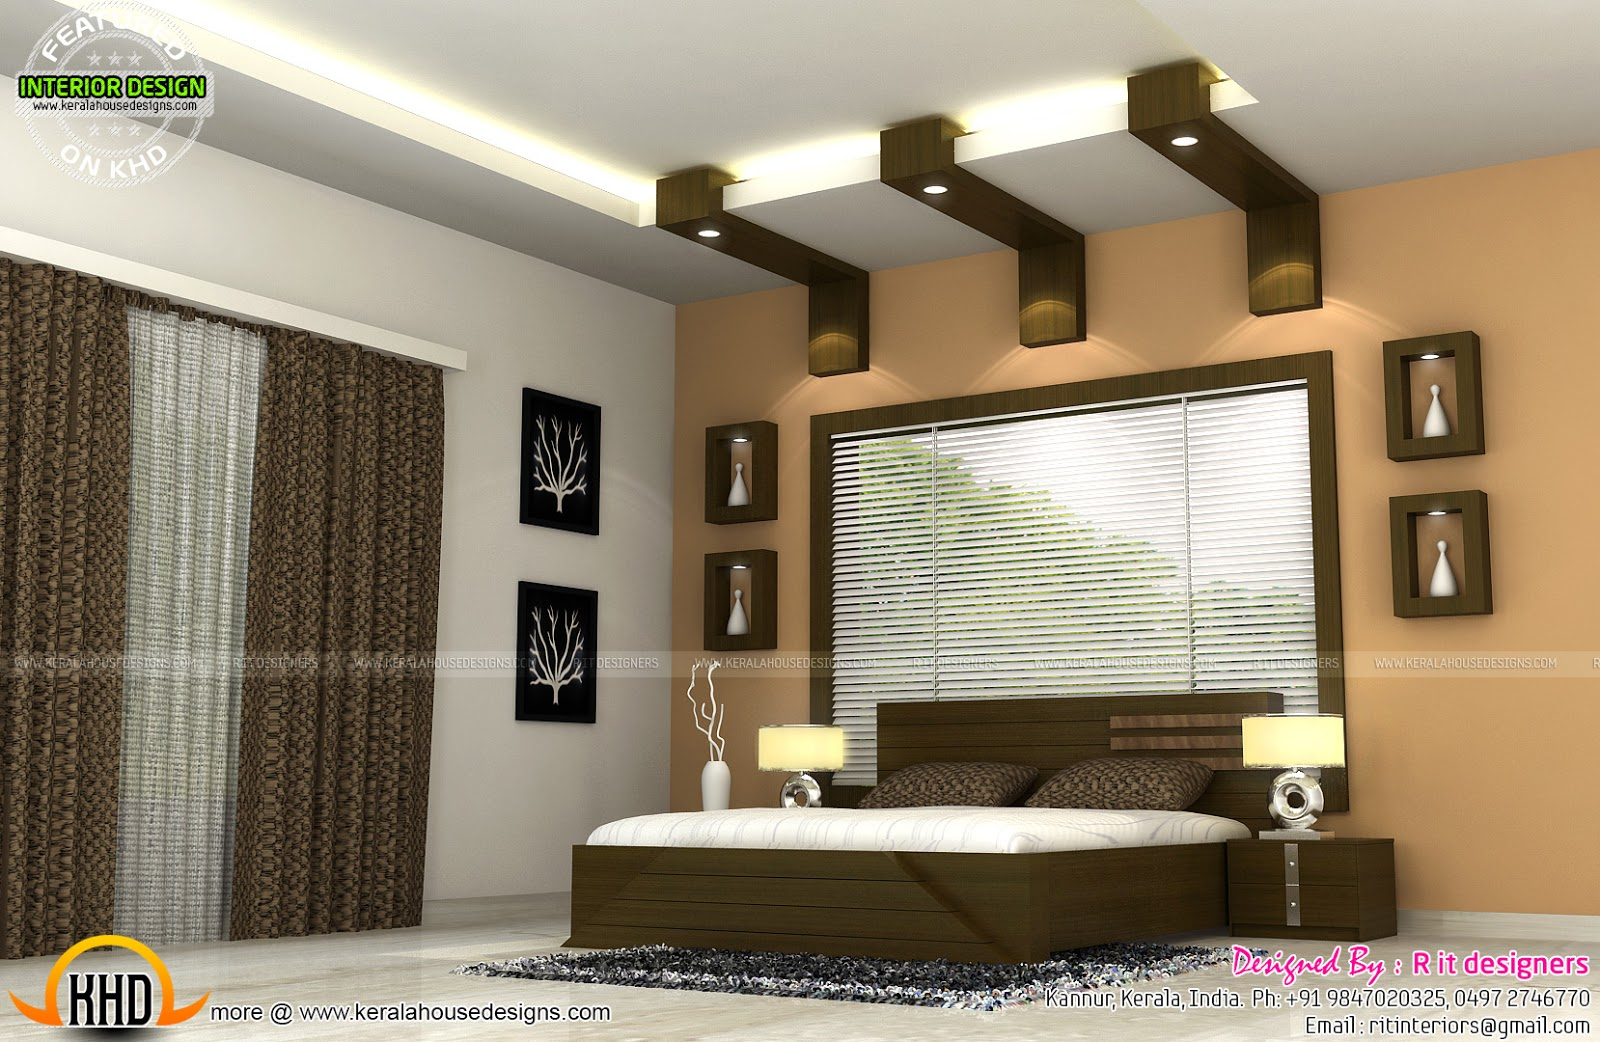 Interiors of bedrooms and kitchen kerala home design and for 1 bedroom design ideas